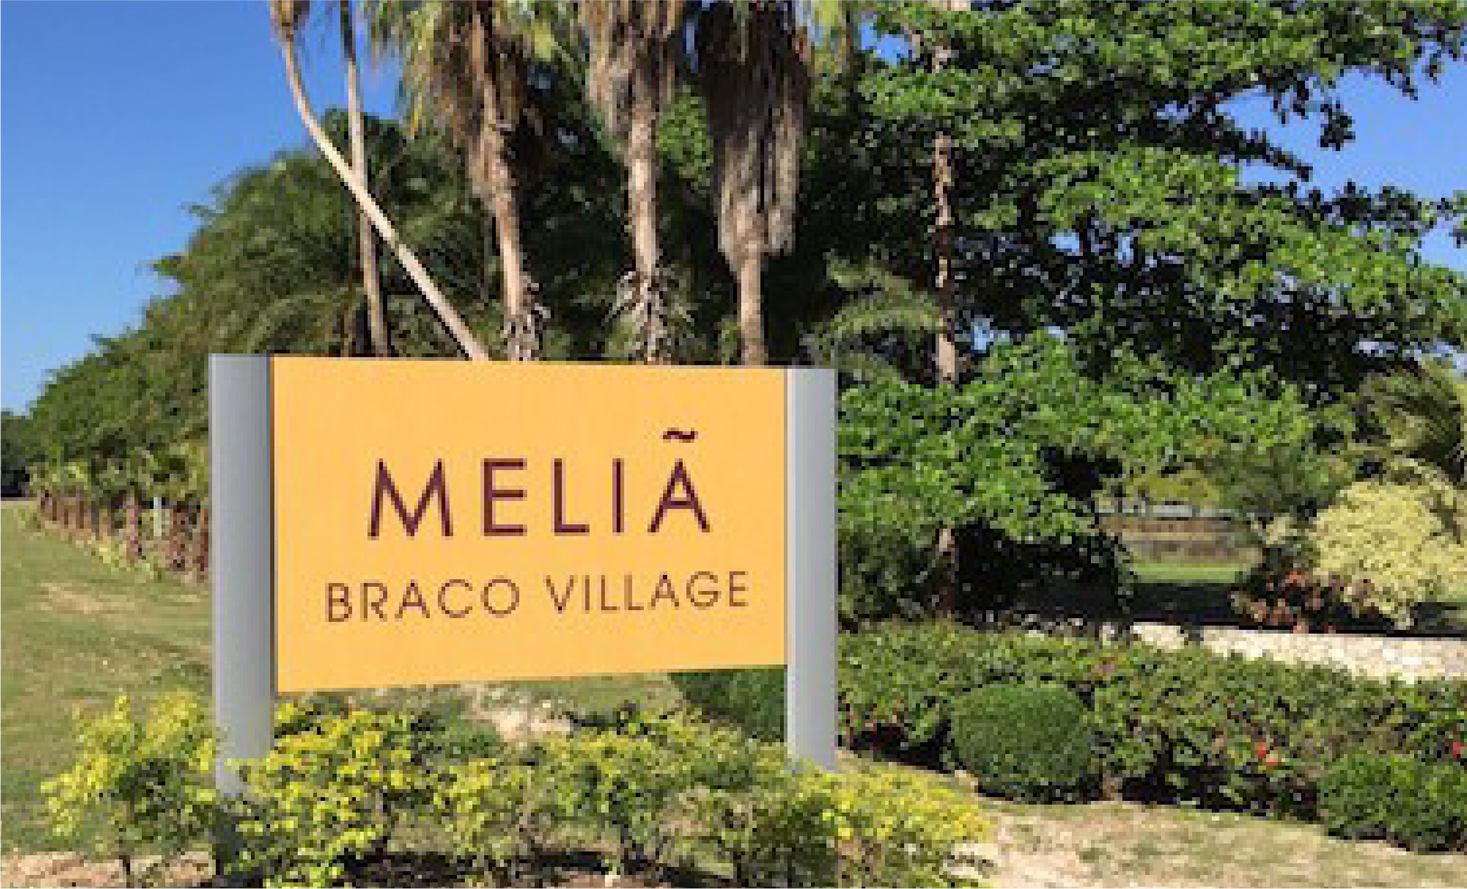 Melia Braco Village Modulex Sign